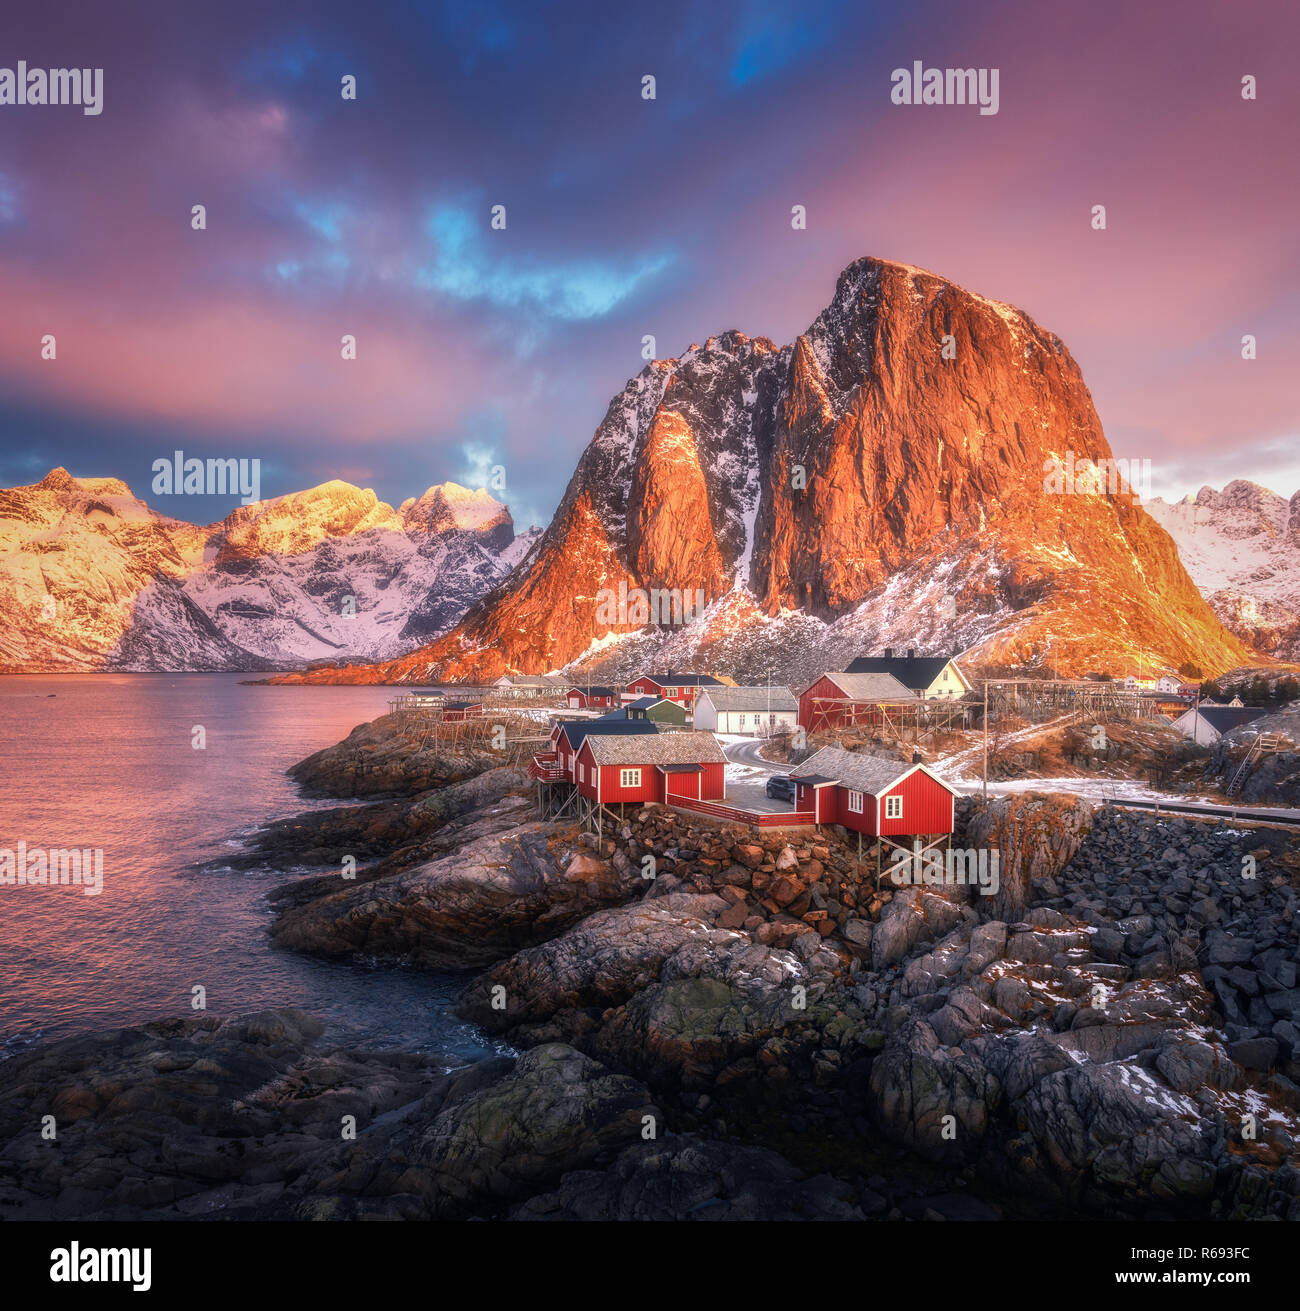 Hamnoy village on the hill at sunrise. Lofoten islands, Norway. Winter landscape with houses, snowy mountains, sea, colorful sky with clouds. Norwegia - Stock Image